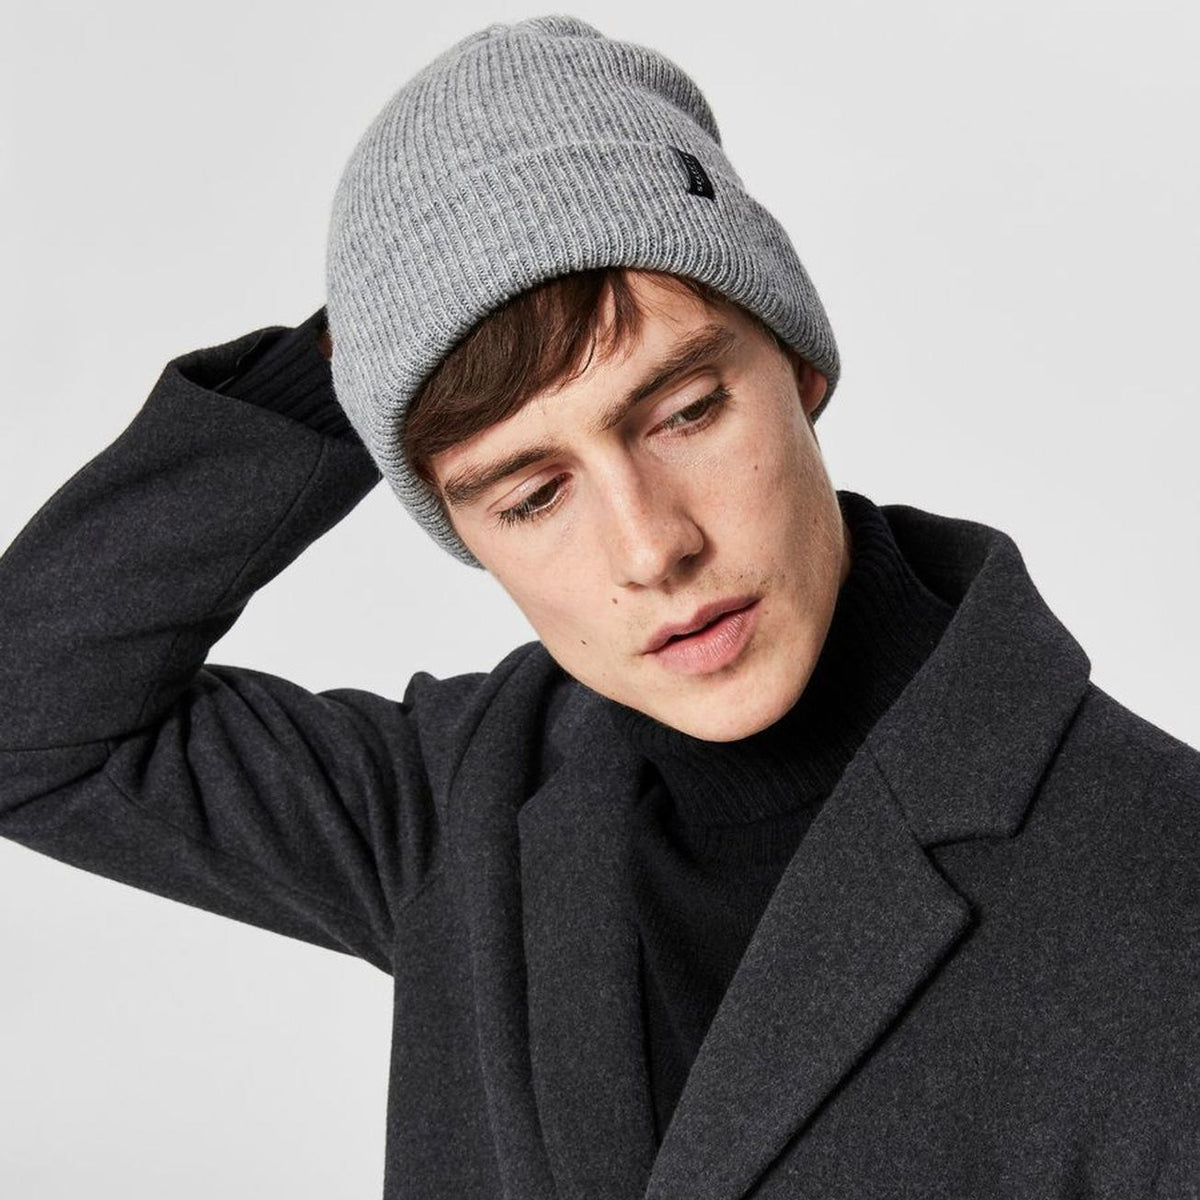 Hat - Selected Homme Wool Blend Beanie - Light Grey